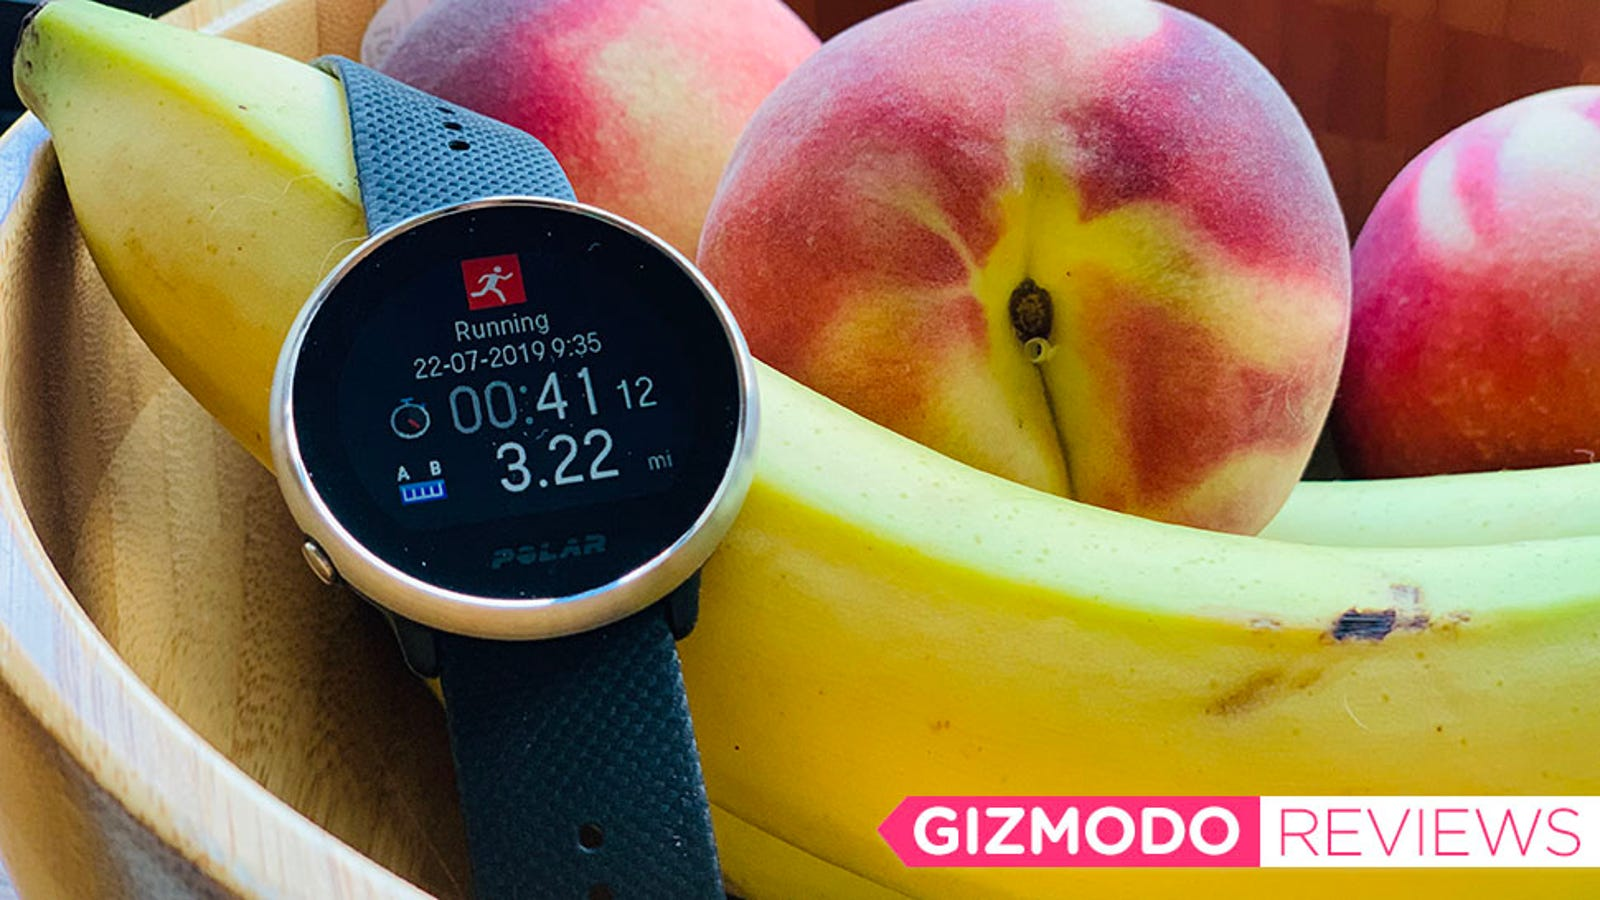 This Fitness Smartwatch Humbled Me Into Taking Recovery Days More Seriously